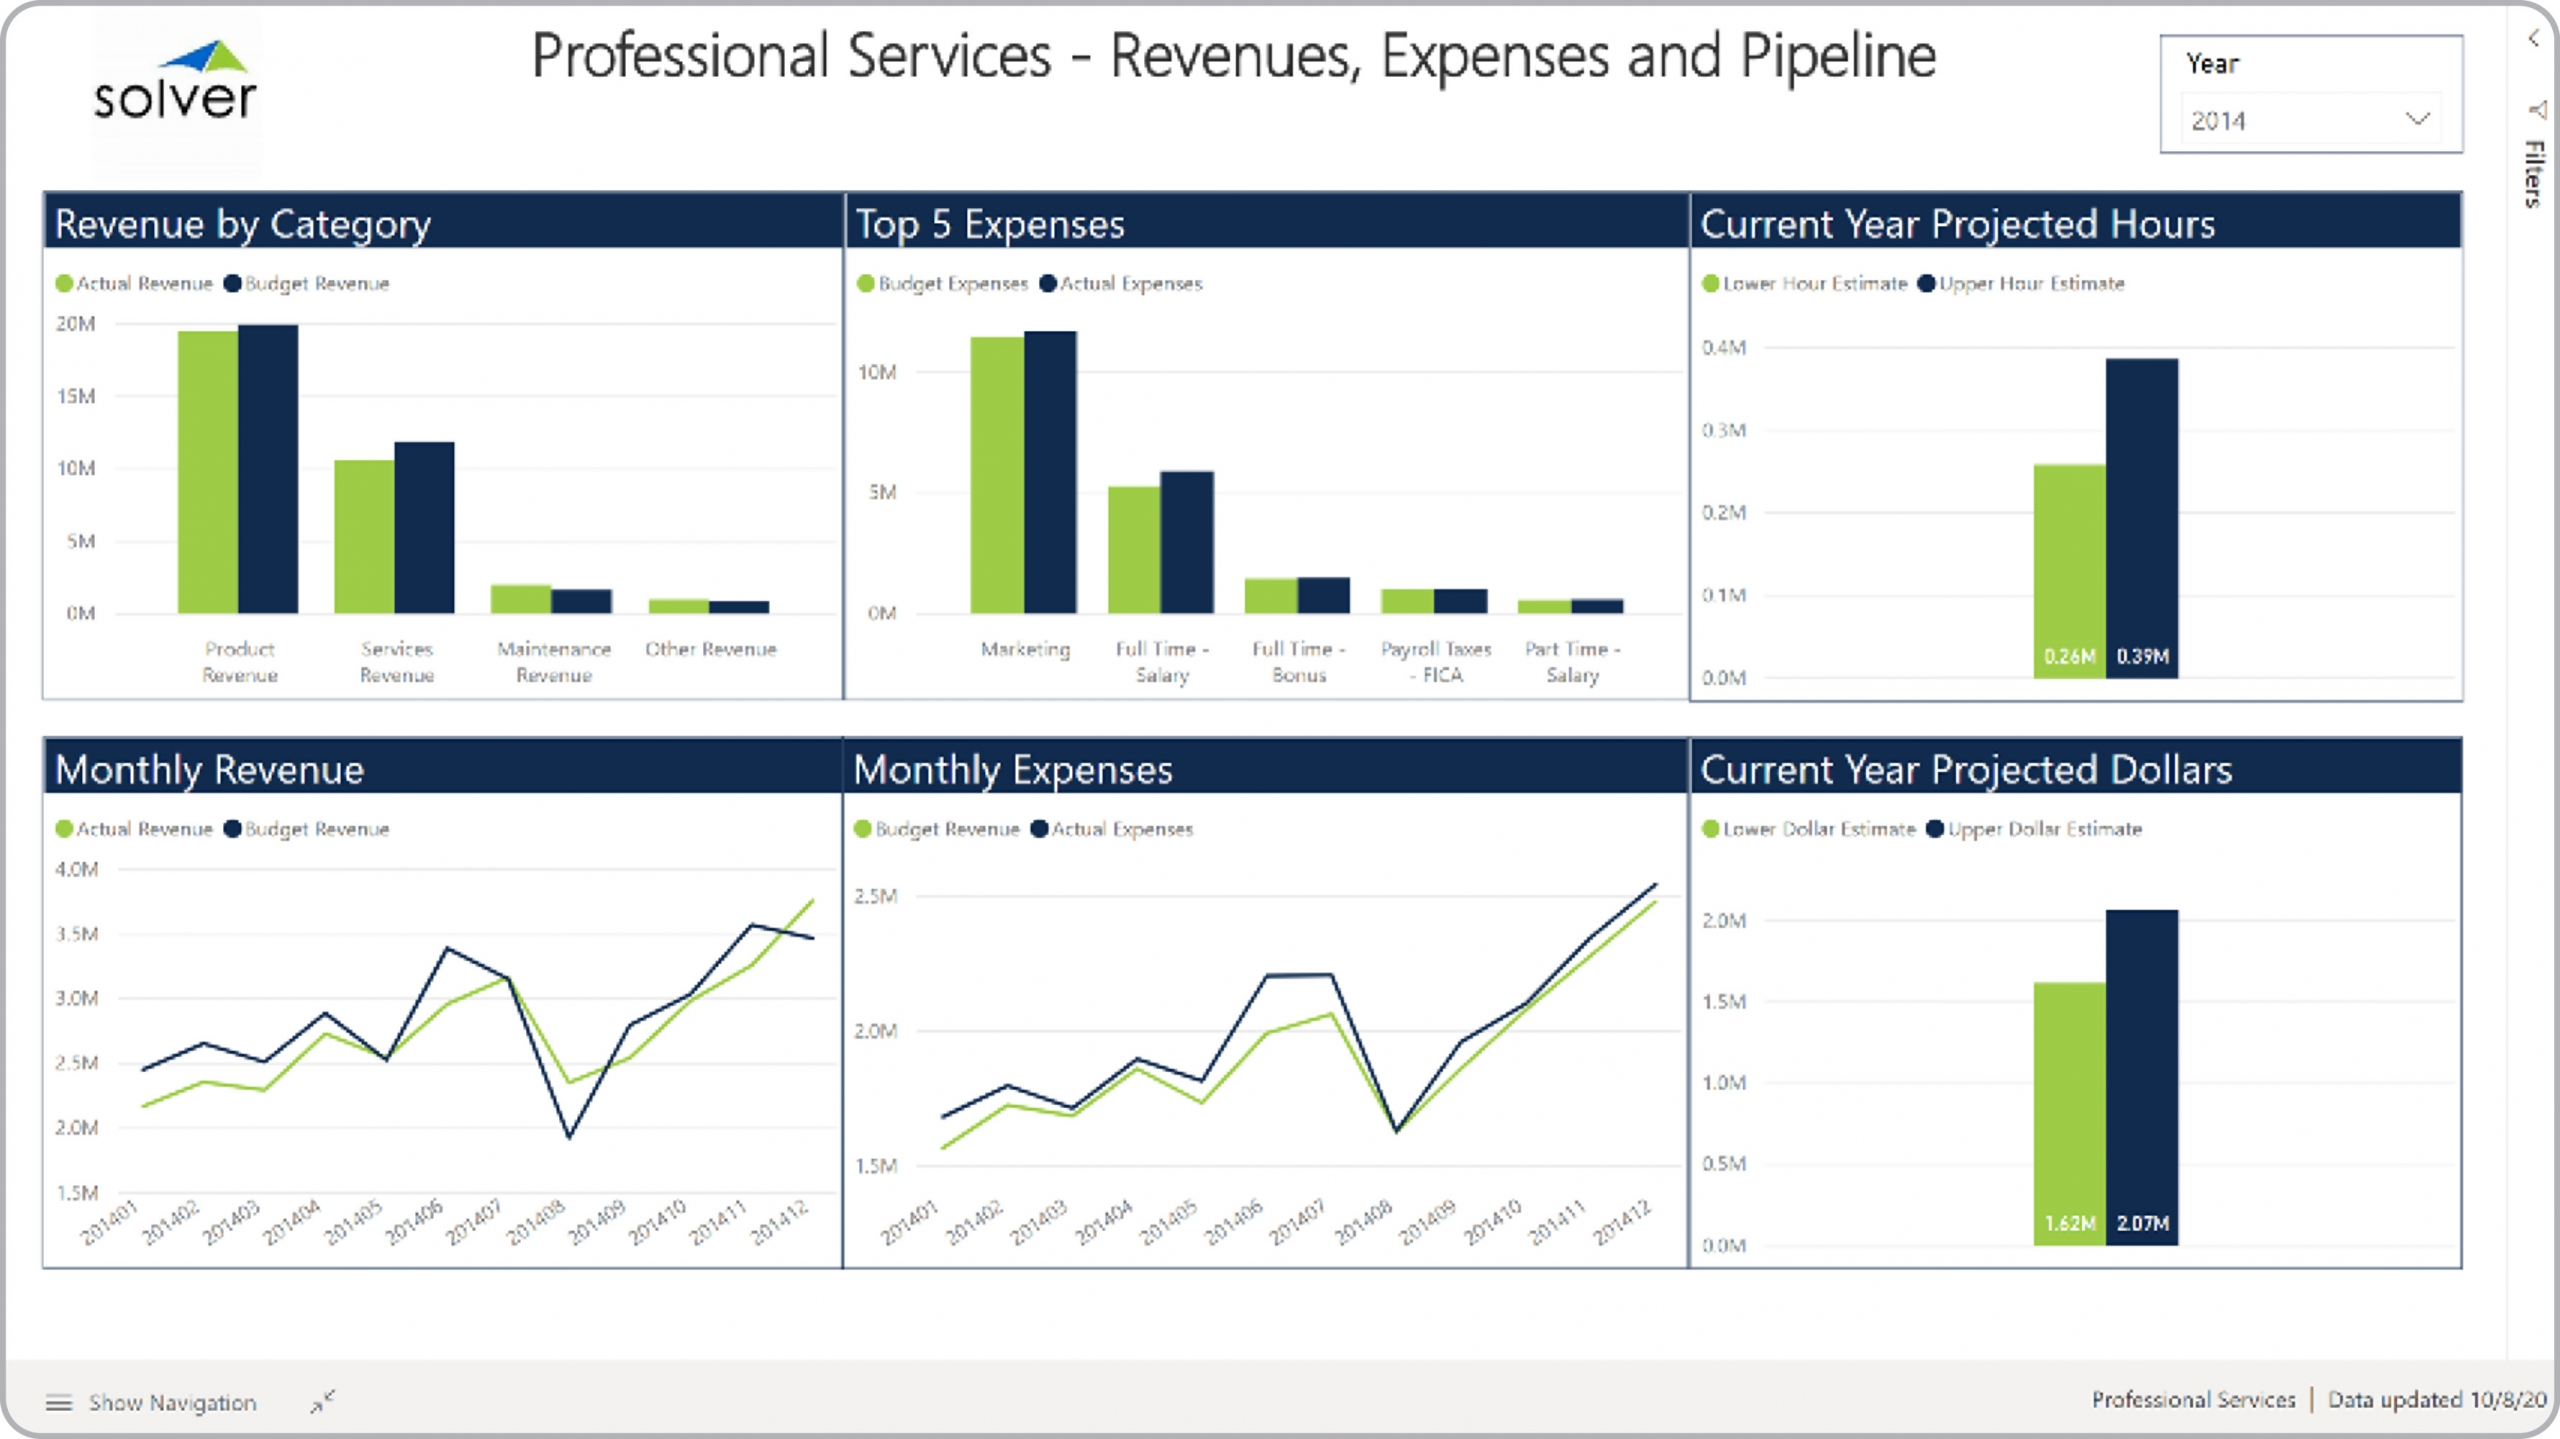 Example of a Revenue and Expense Dashboard for a Professional Services Company